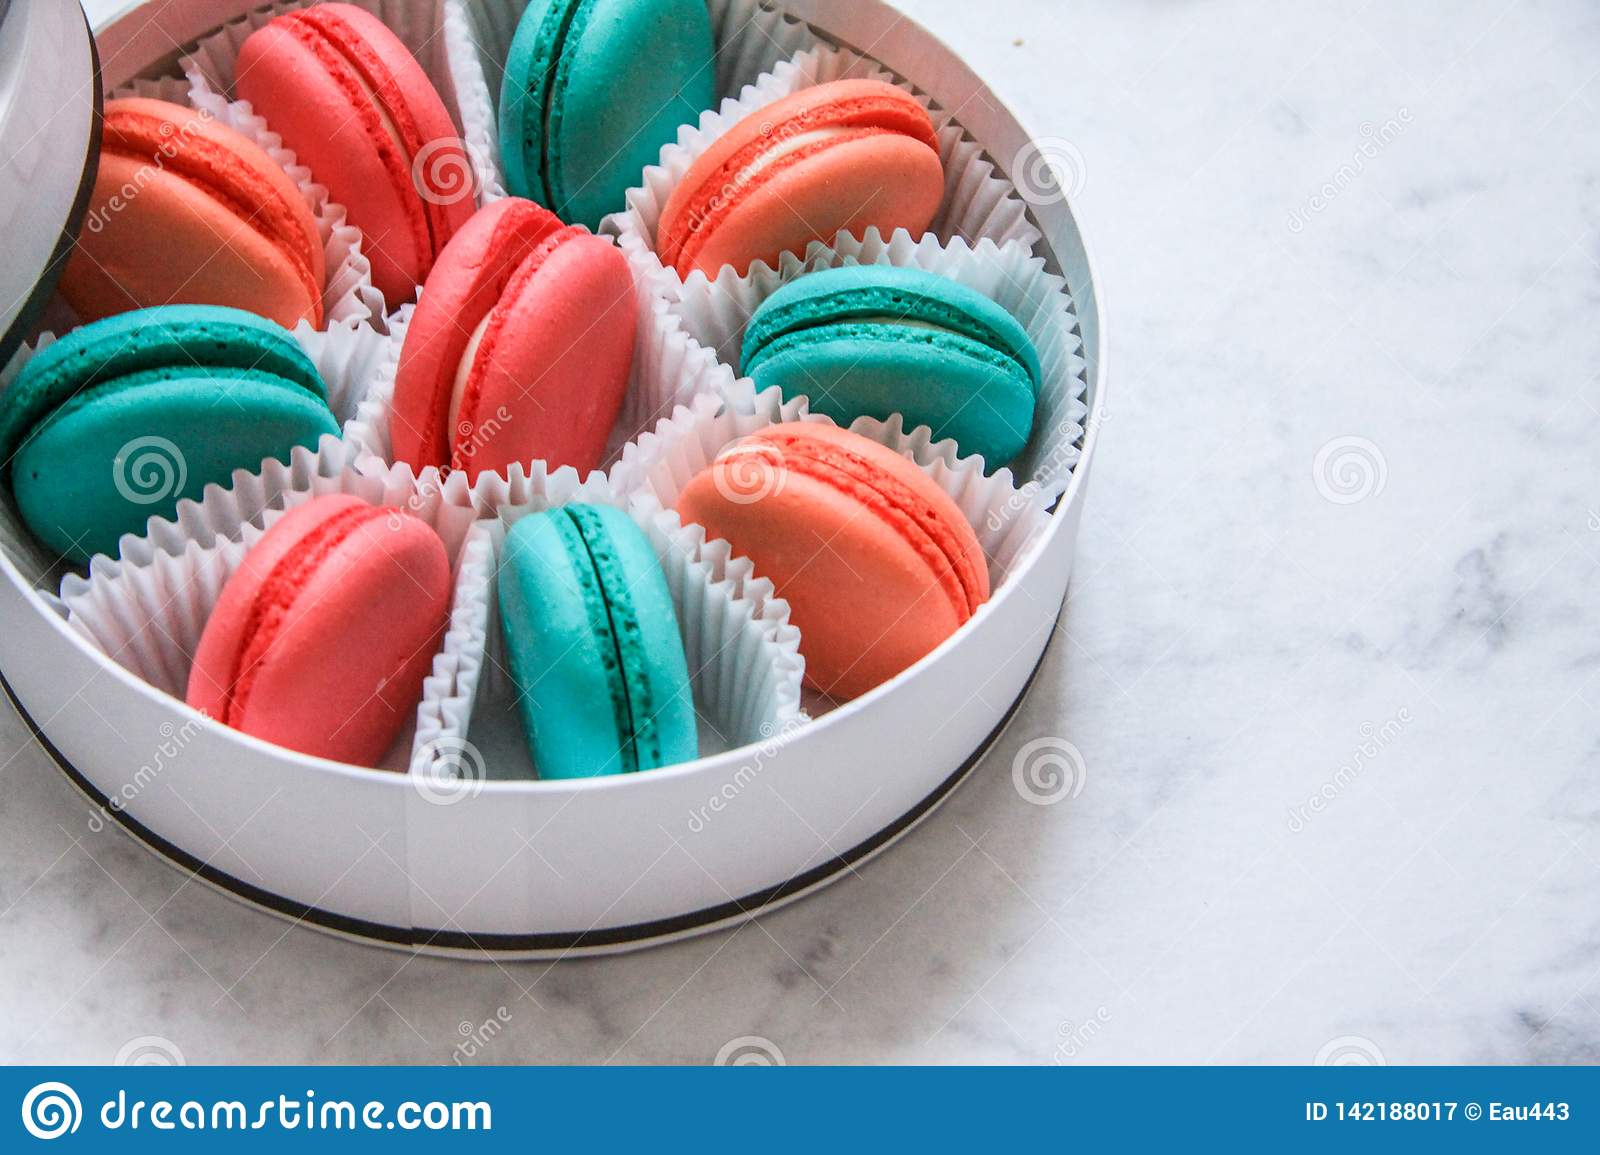 Multi-colored delicious homemade macarons in a round white box on a marble background